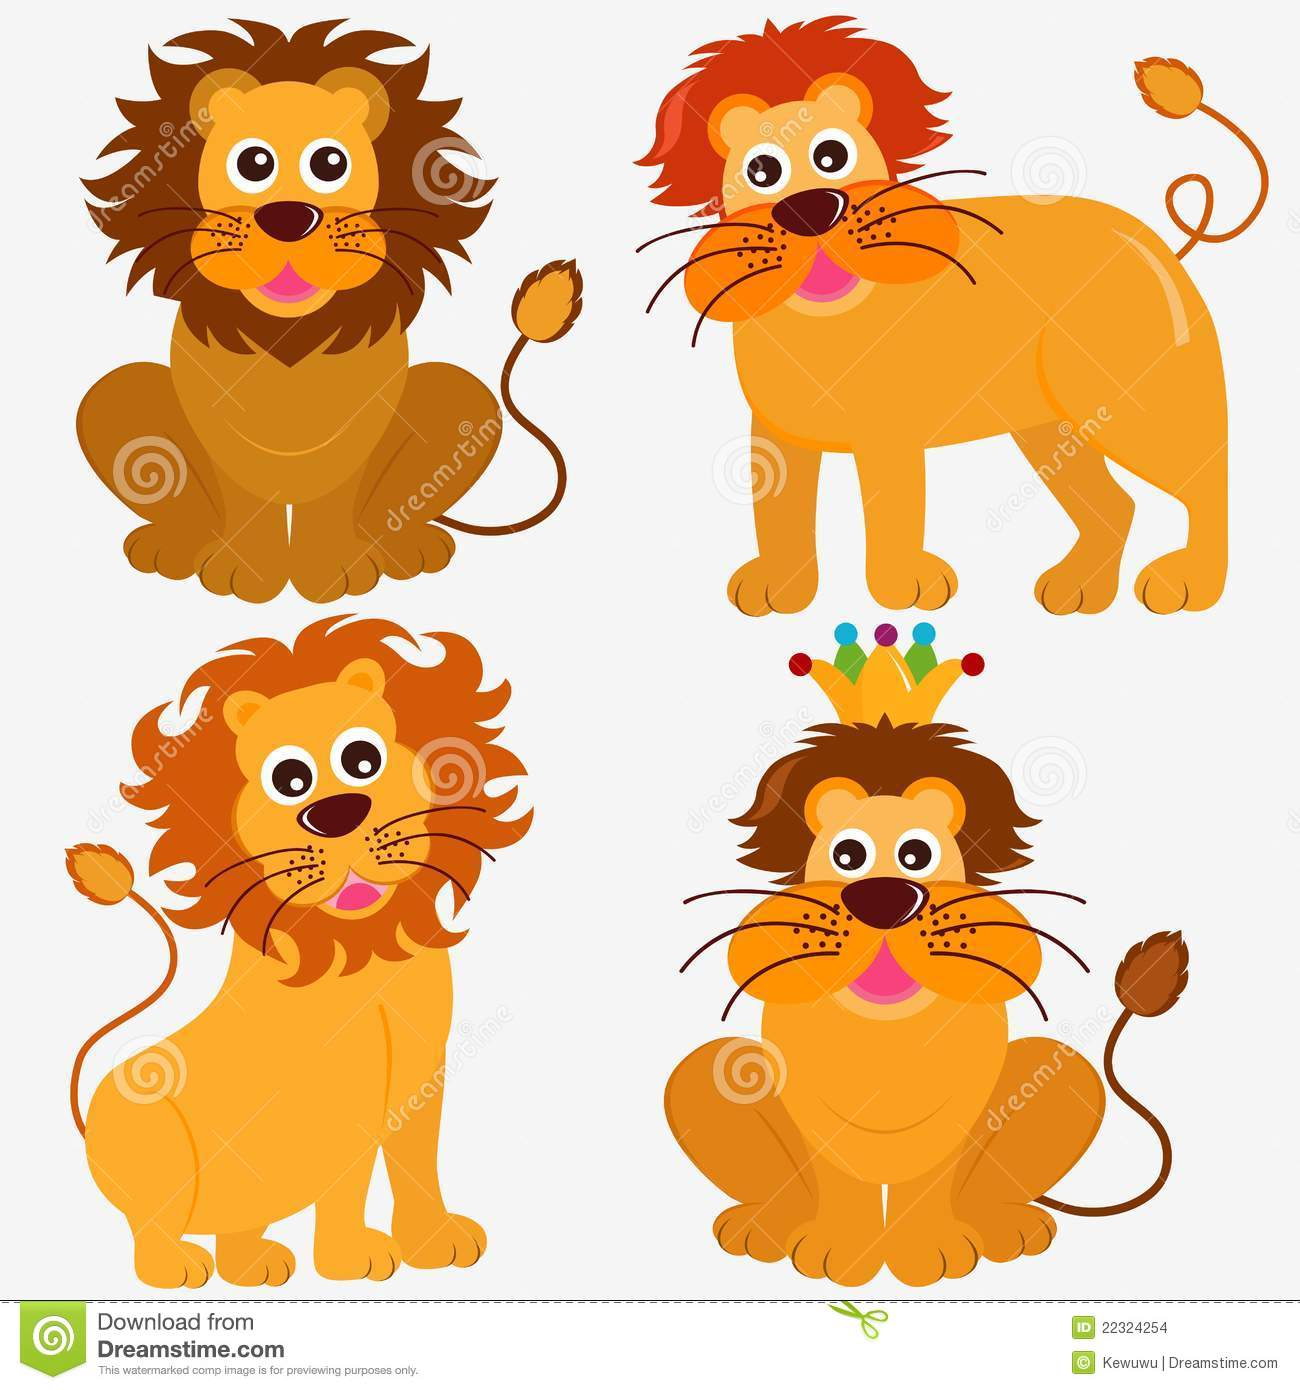 Cute Animal Vector Icons : Lion